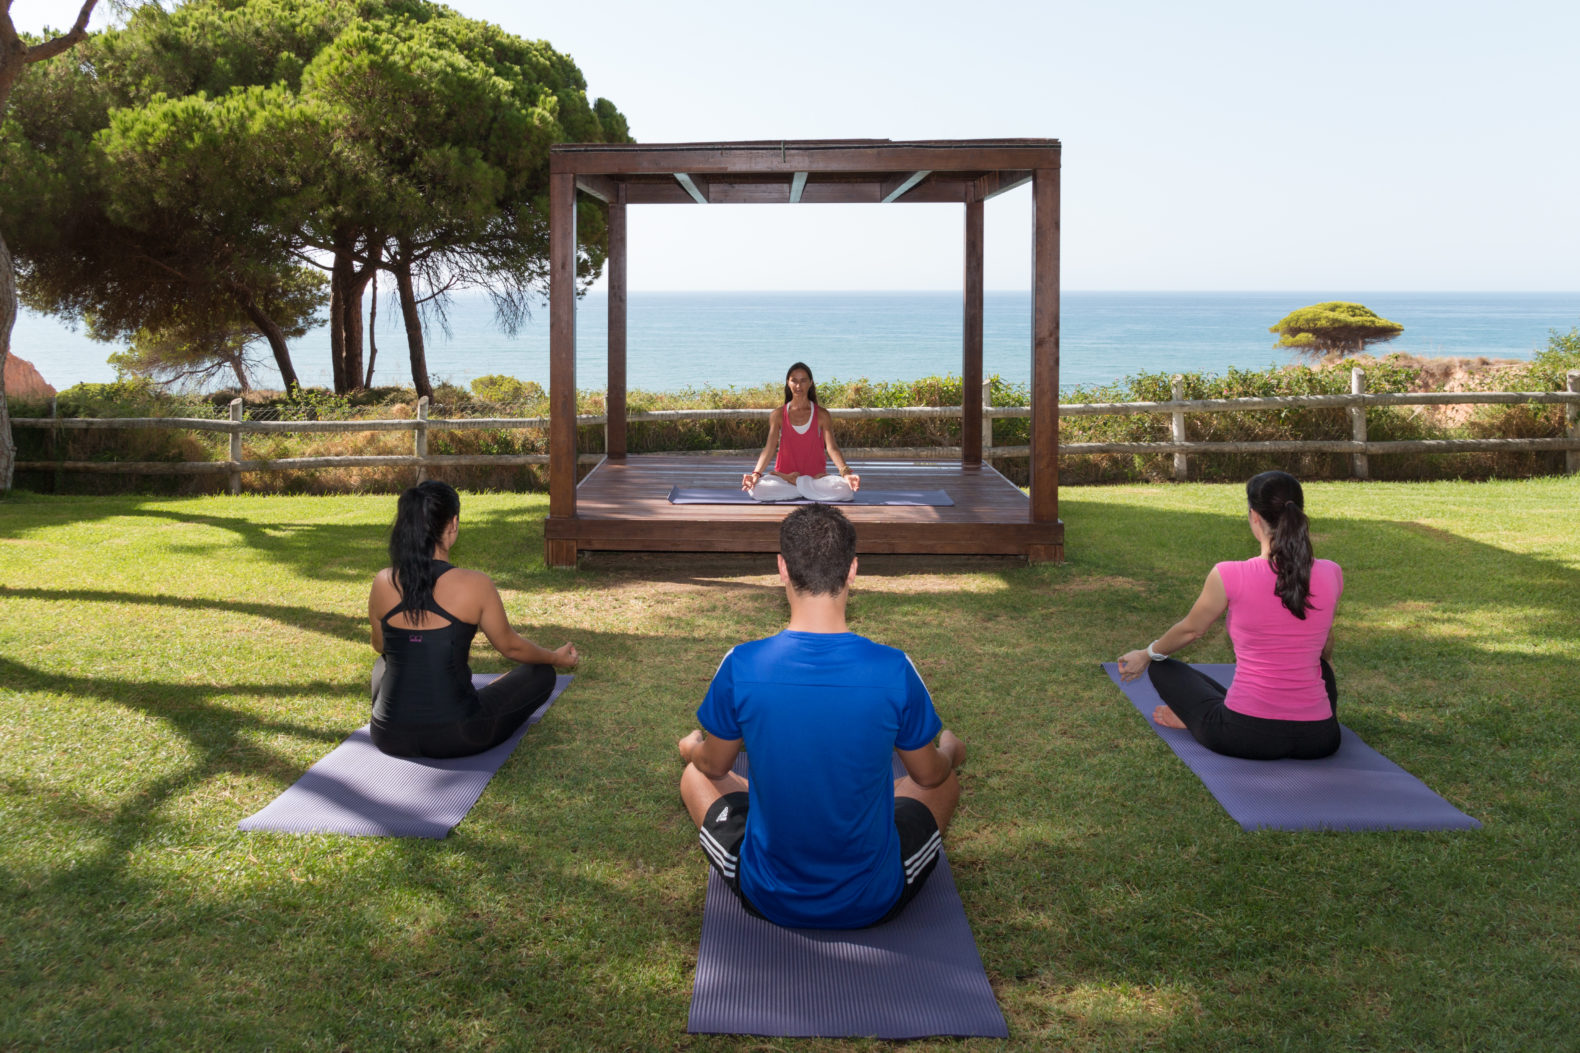 outdoor-yoga-group-session-grass-trees-ocean-view-pine-cliff-resort-algarve-portugal